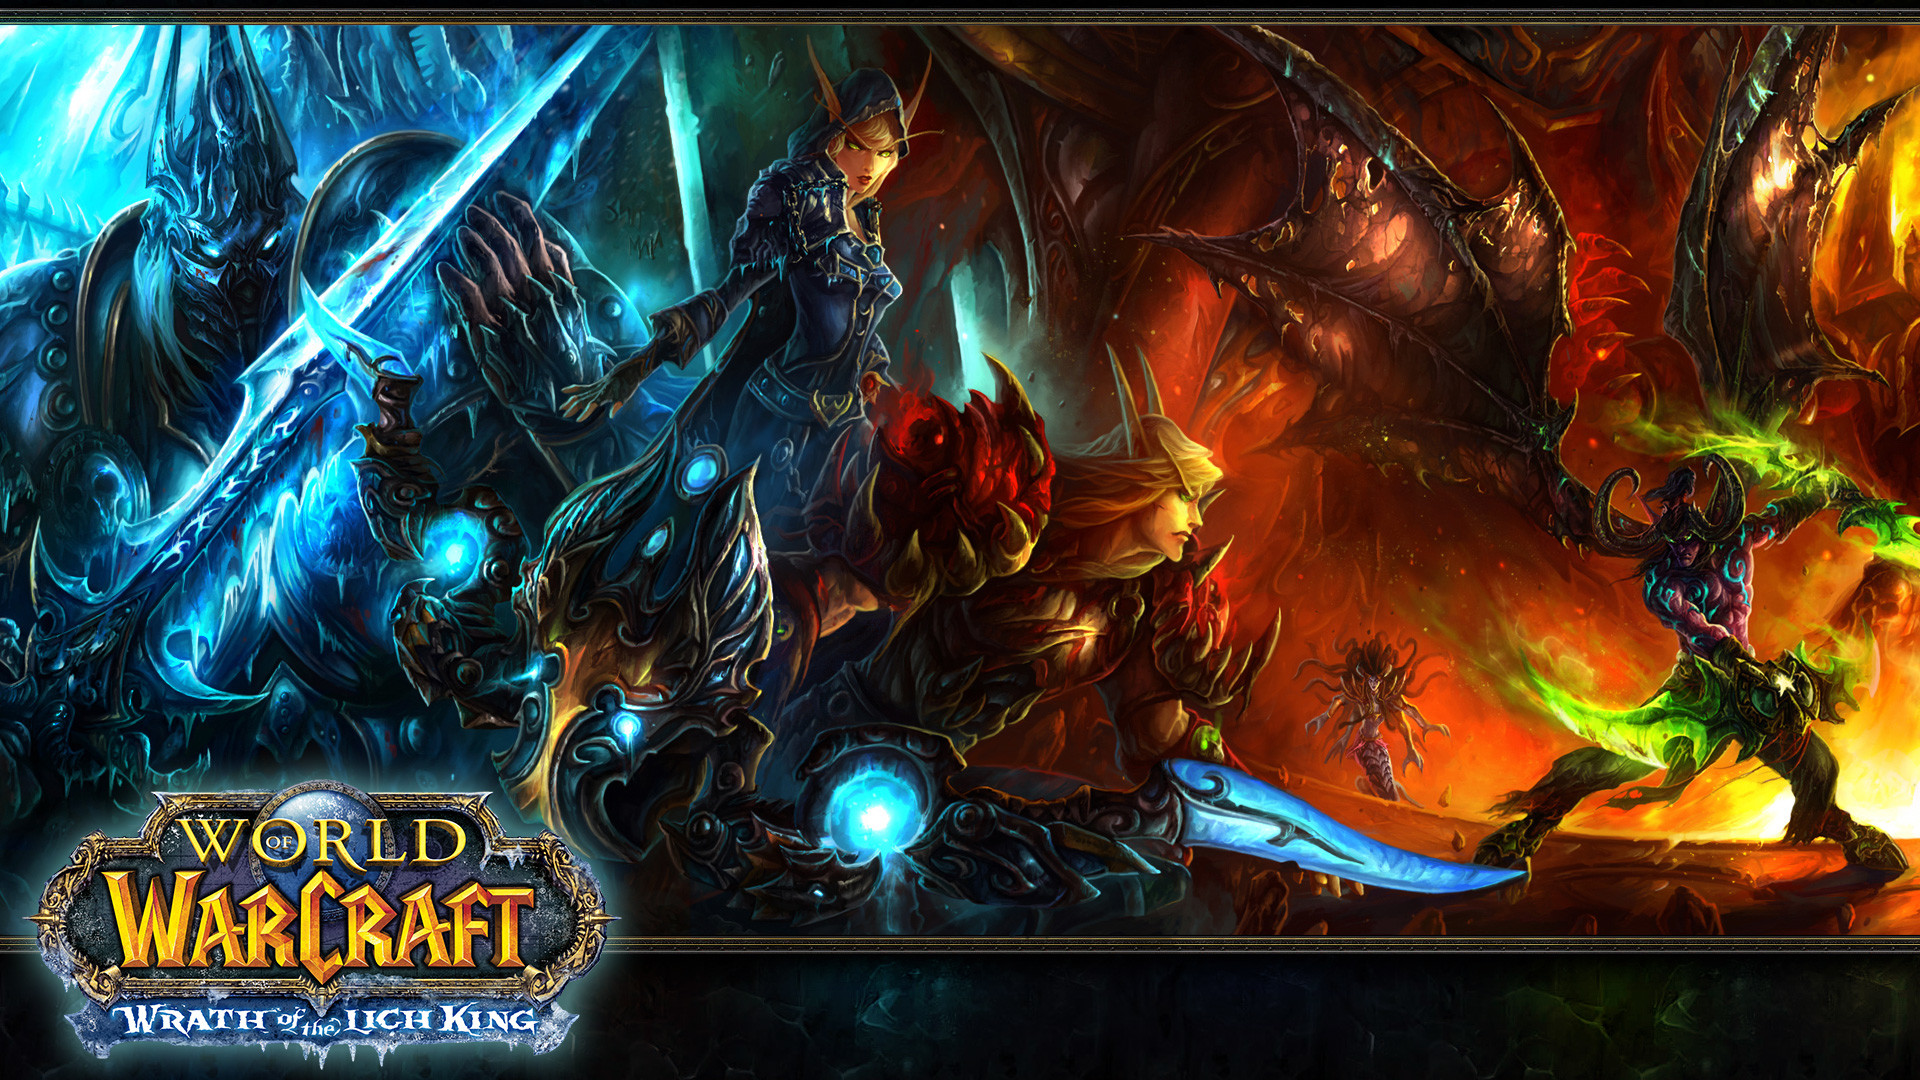 Res: 1920x1080, HD Backgrounds, World Of Warcraft (WoW) Wallpapers -  px, Temika  Tischler